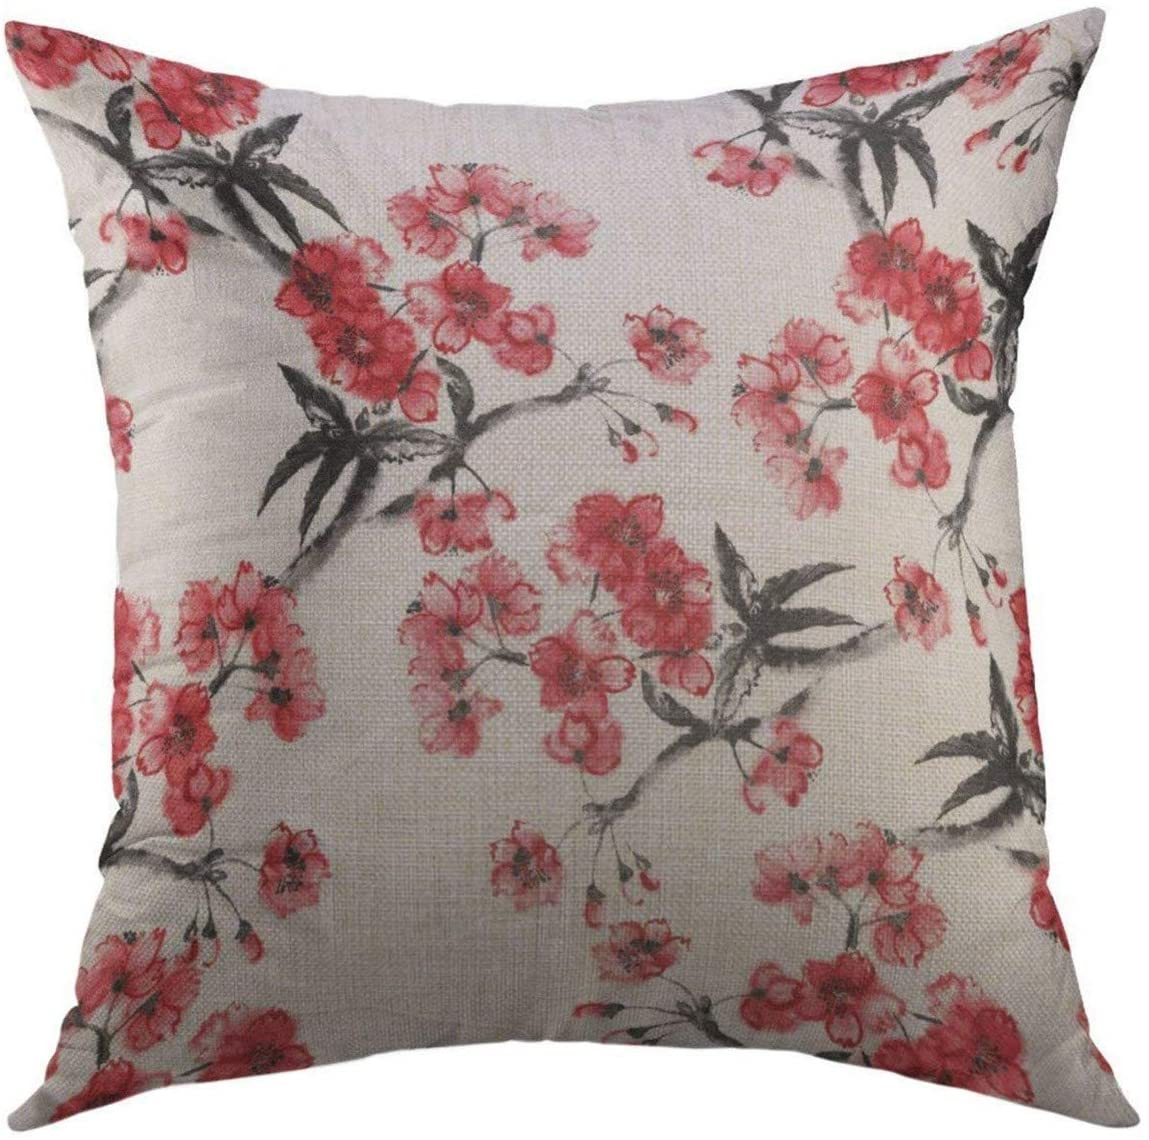 Mugod Decorative Throw Pillow Cover for Couch Sofa,Floral Cherry Blossom Oriental Ink Painting Sumi E Style Branches of Sakura Pattern Asian Flower Home Decor Pillow case 18x18 Inch